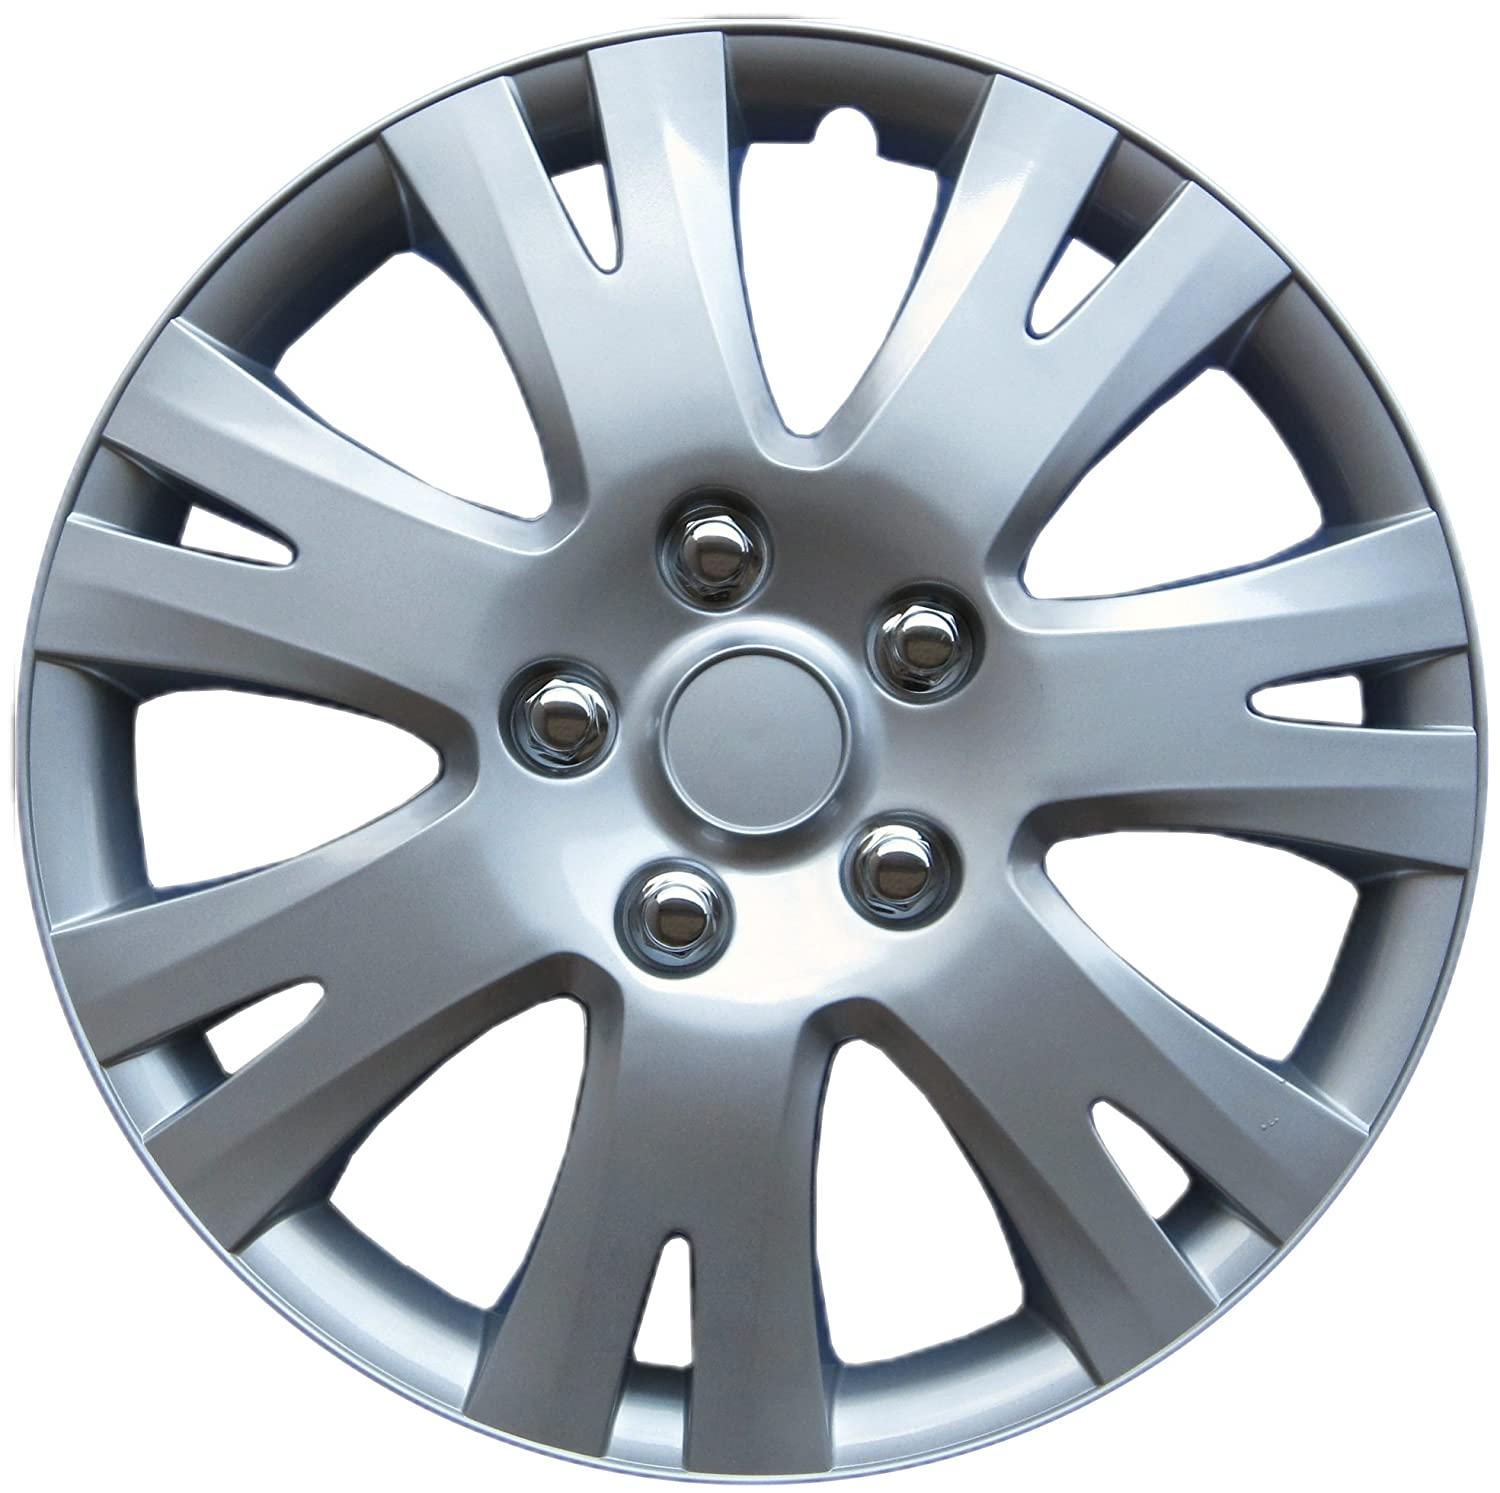 Drive Accessories 1032 Silver 16' ABS Plastic Aftermarket Wheel Cover